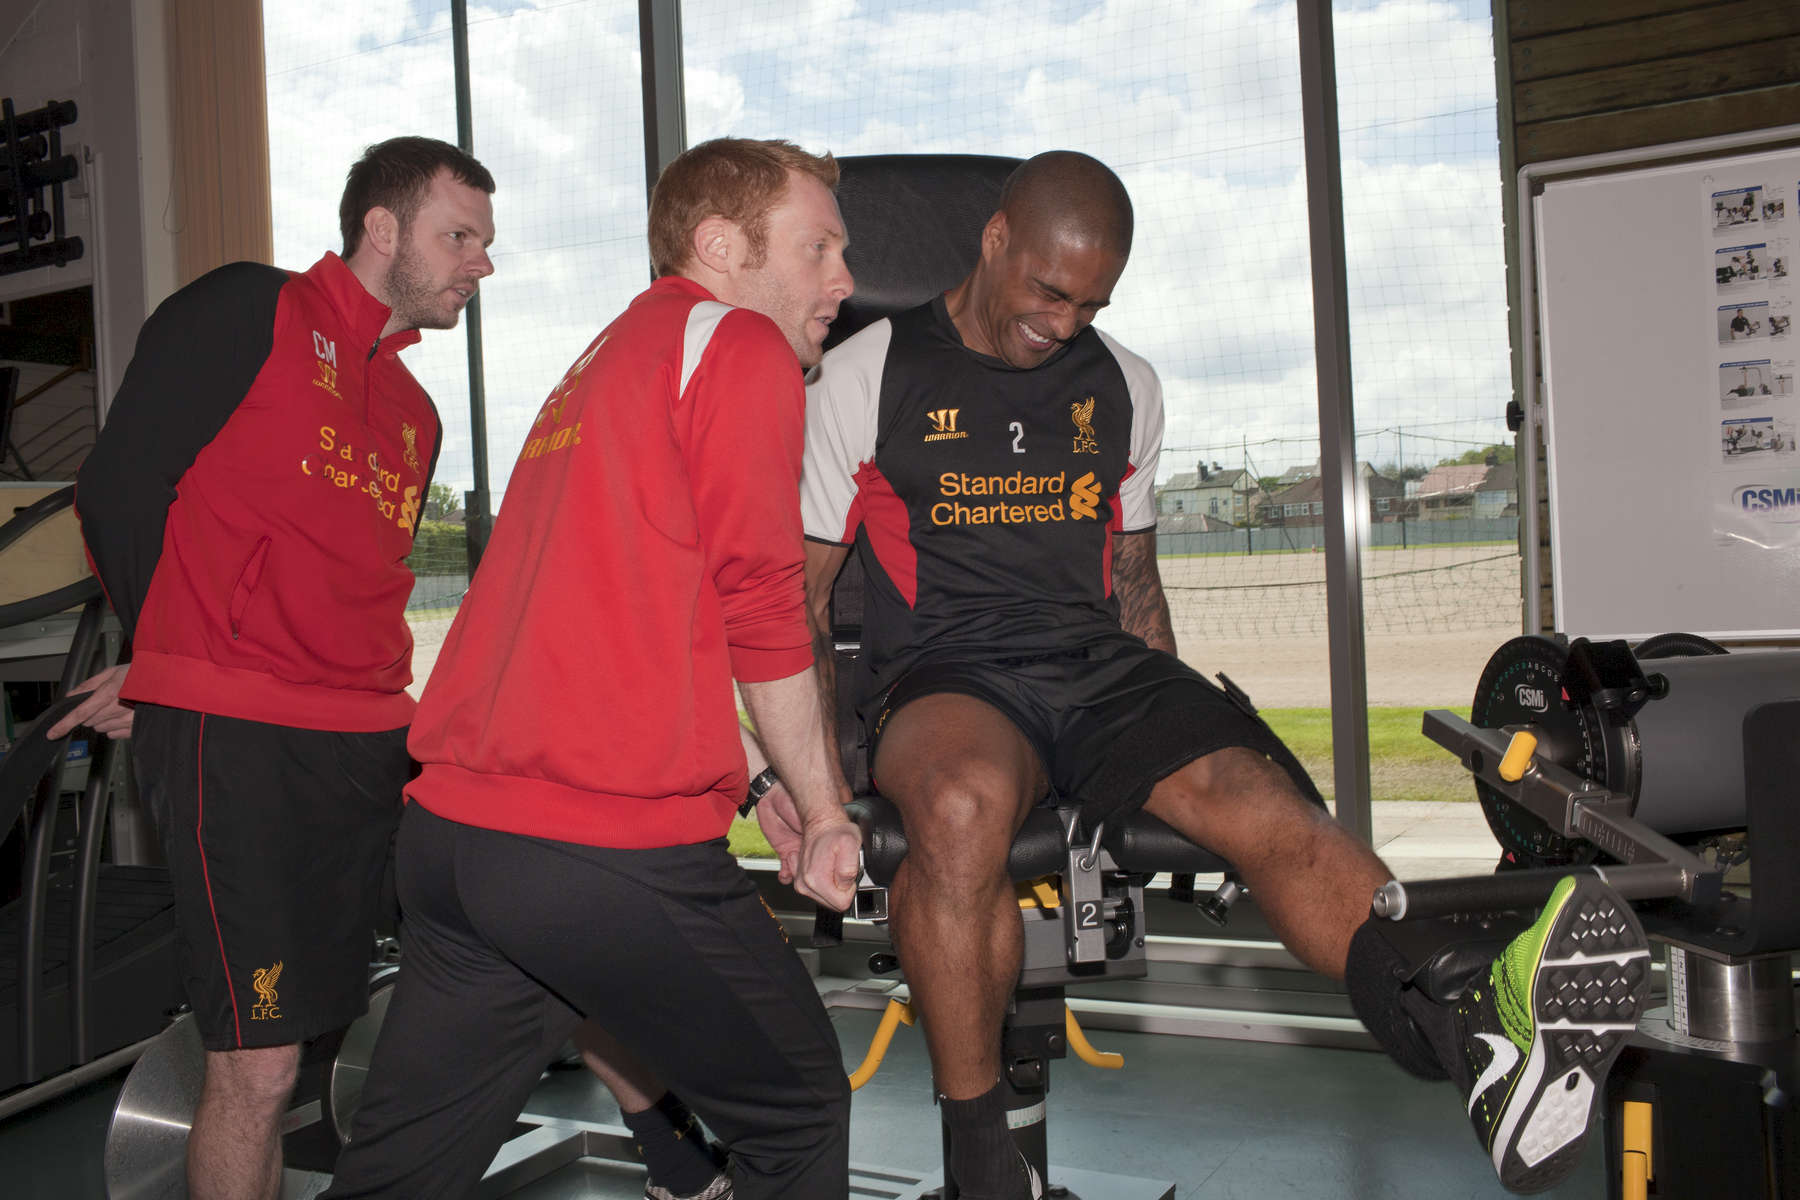 England and Liverpool FC right back Glen Johnson in the gym at Melwood.Melwood is the Liverpool FC training ground, located in the West Derby area of Liverpool. It is seperate from the Liverpool Academy, which is based in Kirkby.Melwood was redeveloped in the early 2000′s with large input from then-manager Gerard Houllier and now features some of the best facilities in Europe. It has been the club's training ground since the fifties and was previously transformed into a top class facility by Bill Shankly.Facilities include sythetic pitches, rehabilitation rooms, press and meeting rooms, gymnasium, swimming pool, restaurant and recreational facilities.